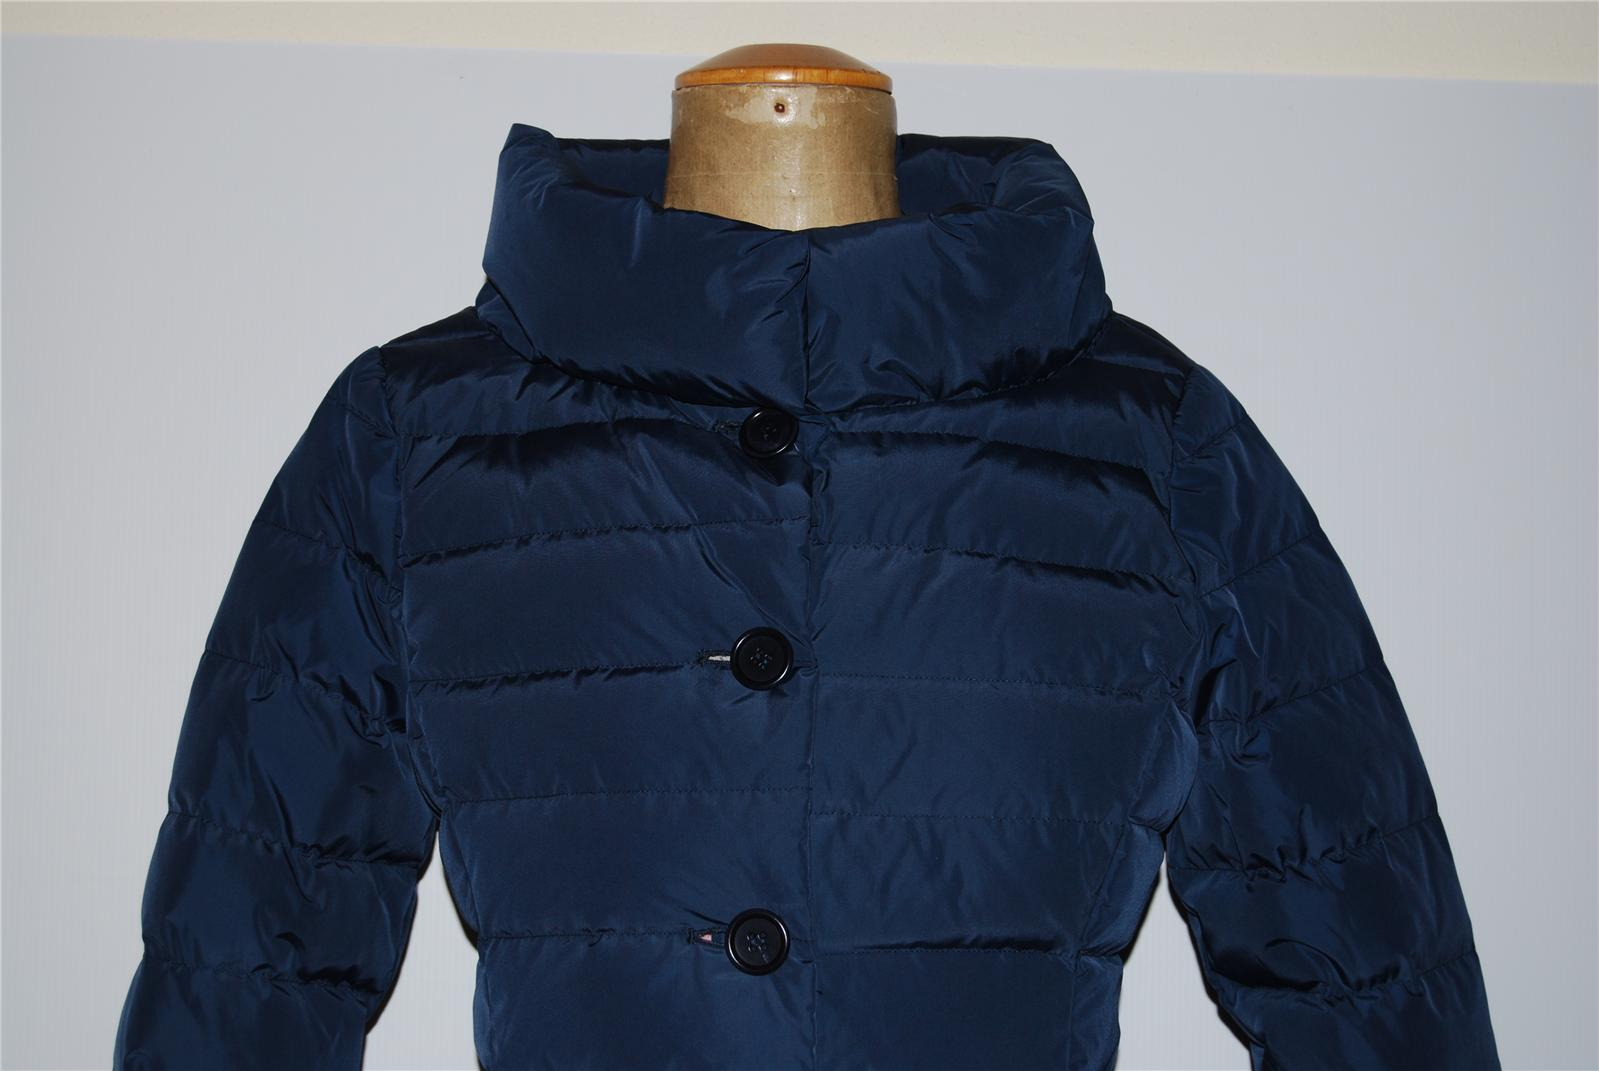 on sale 6accb aac90 PIUMINO ASPESI DONNA LUNGO BLU Q2